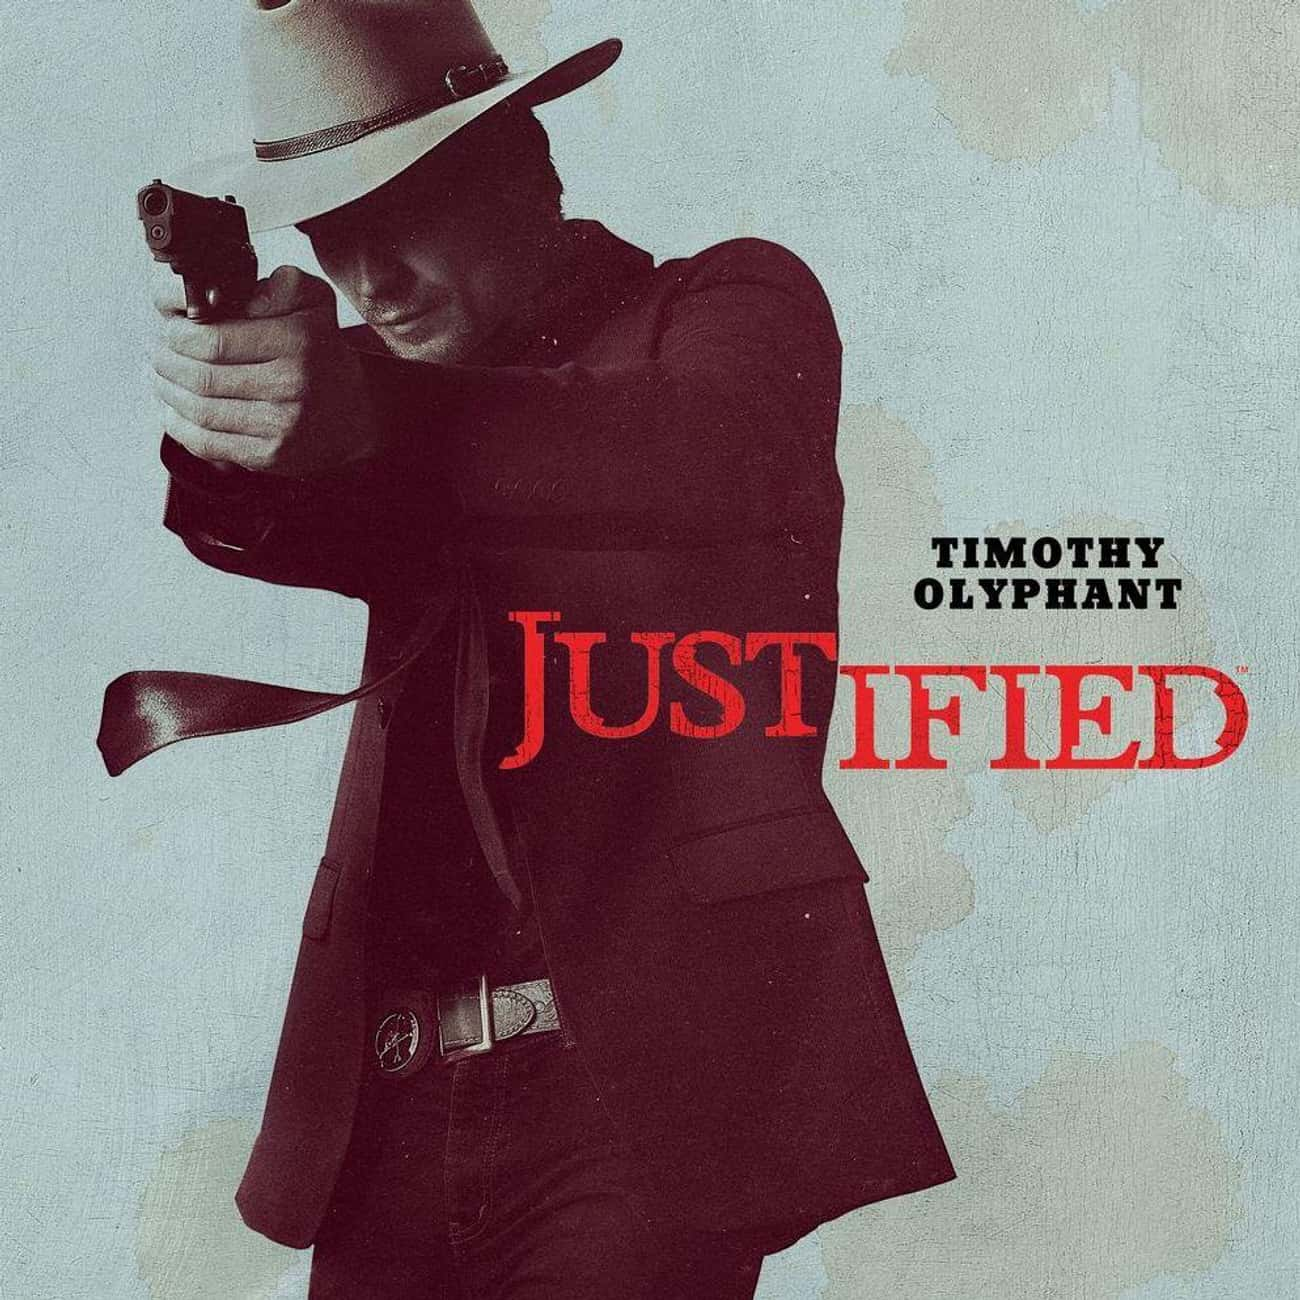 Justified is listed (or ranked) 1 on the list What To Watch If You Love 'Longmire'